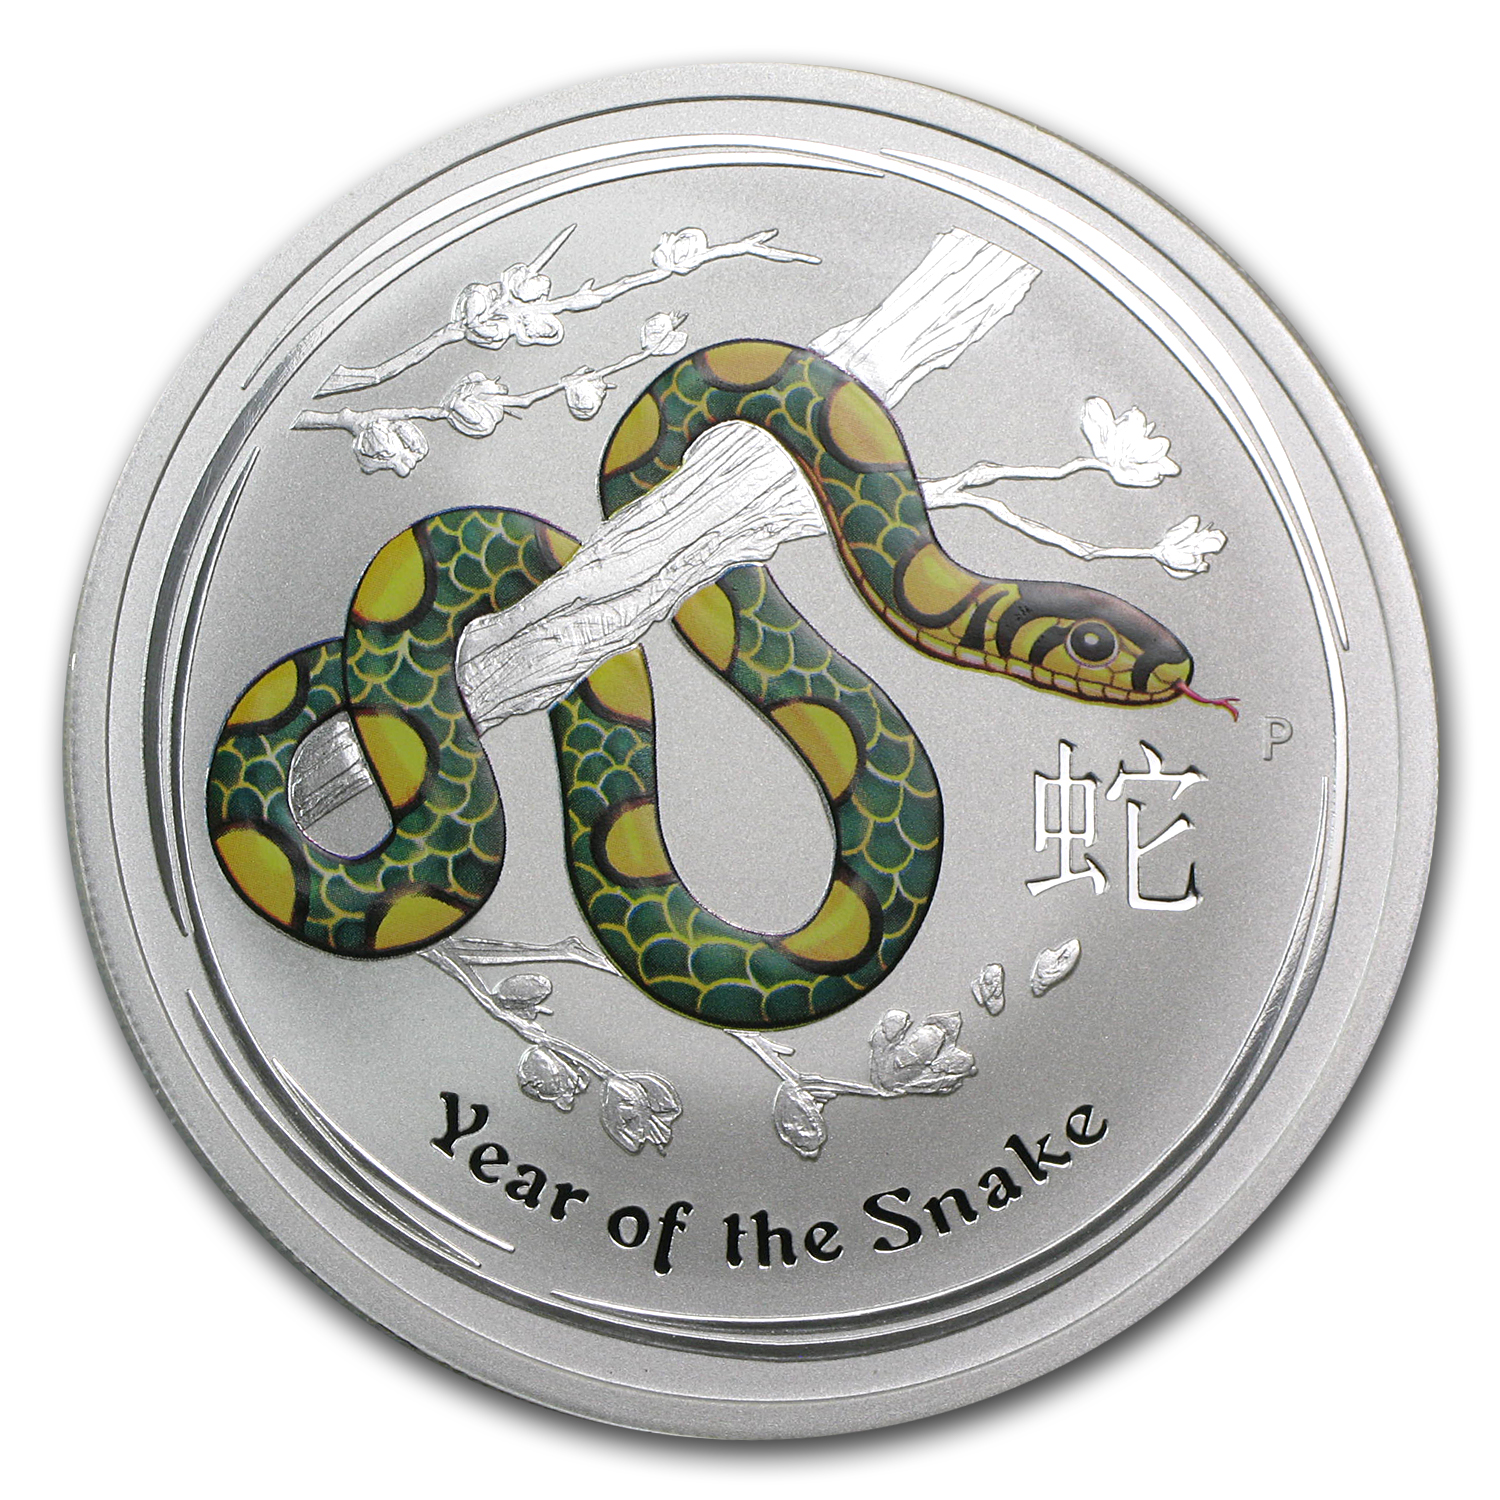 2013 Australia 2 oz Silver Year of the Snake BU (Colorized)